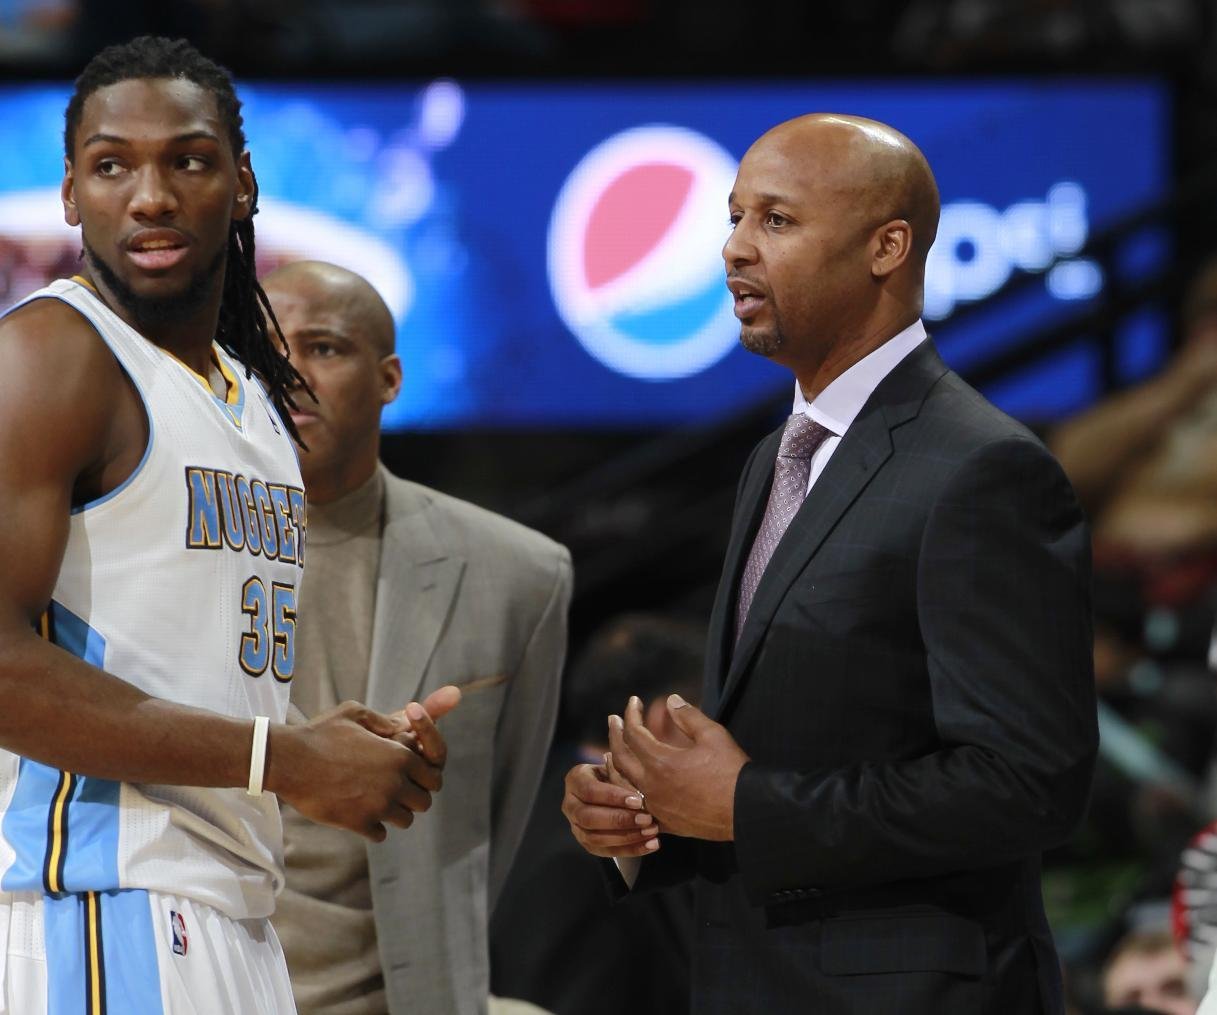 Denver Nuggets Struggling Without Star Power: After Brian Shaw, Kenneth Faried Just Wants 'a Coach That